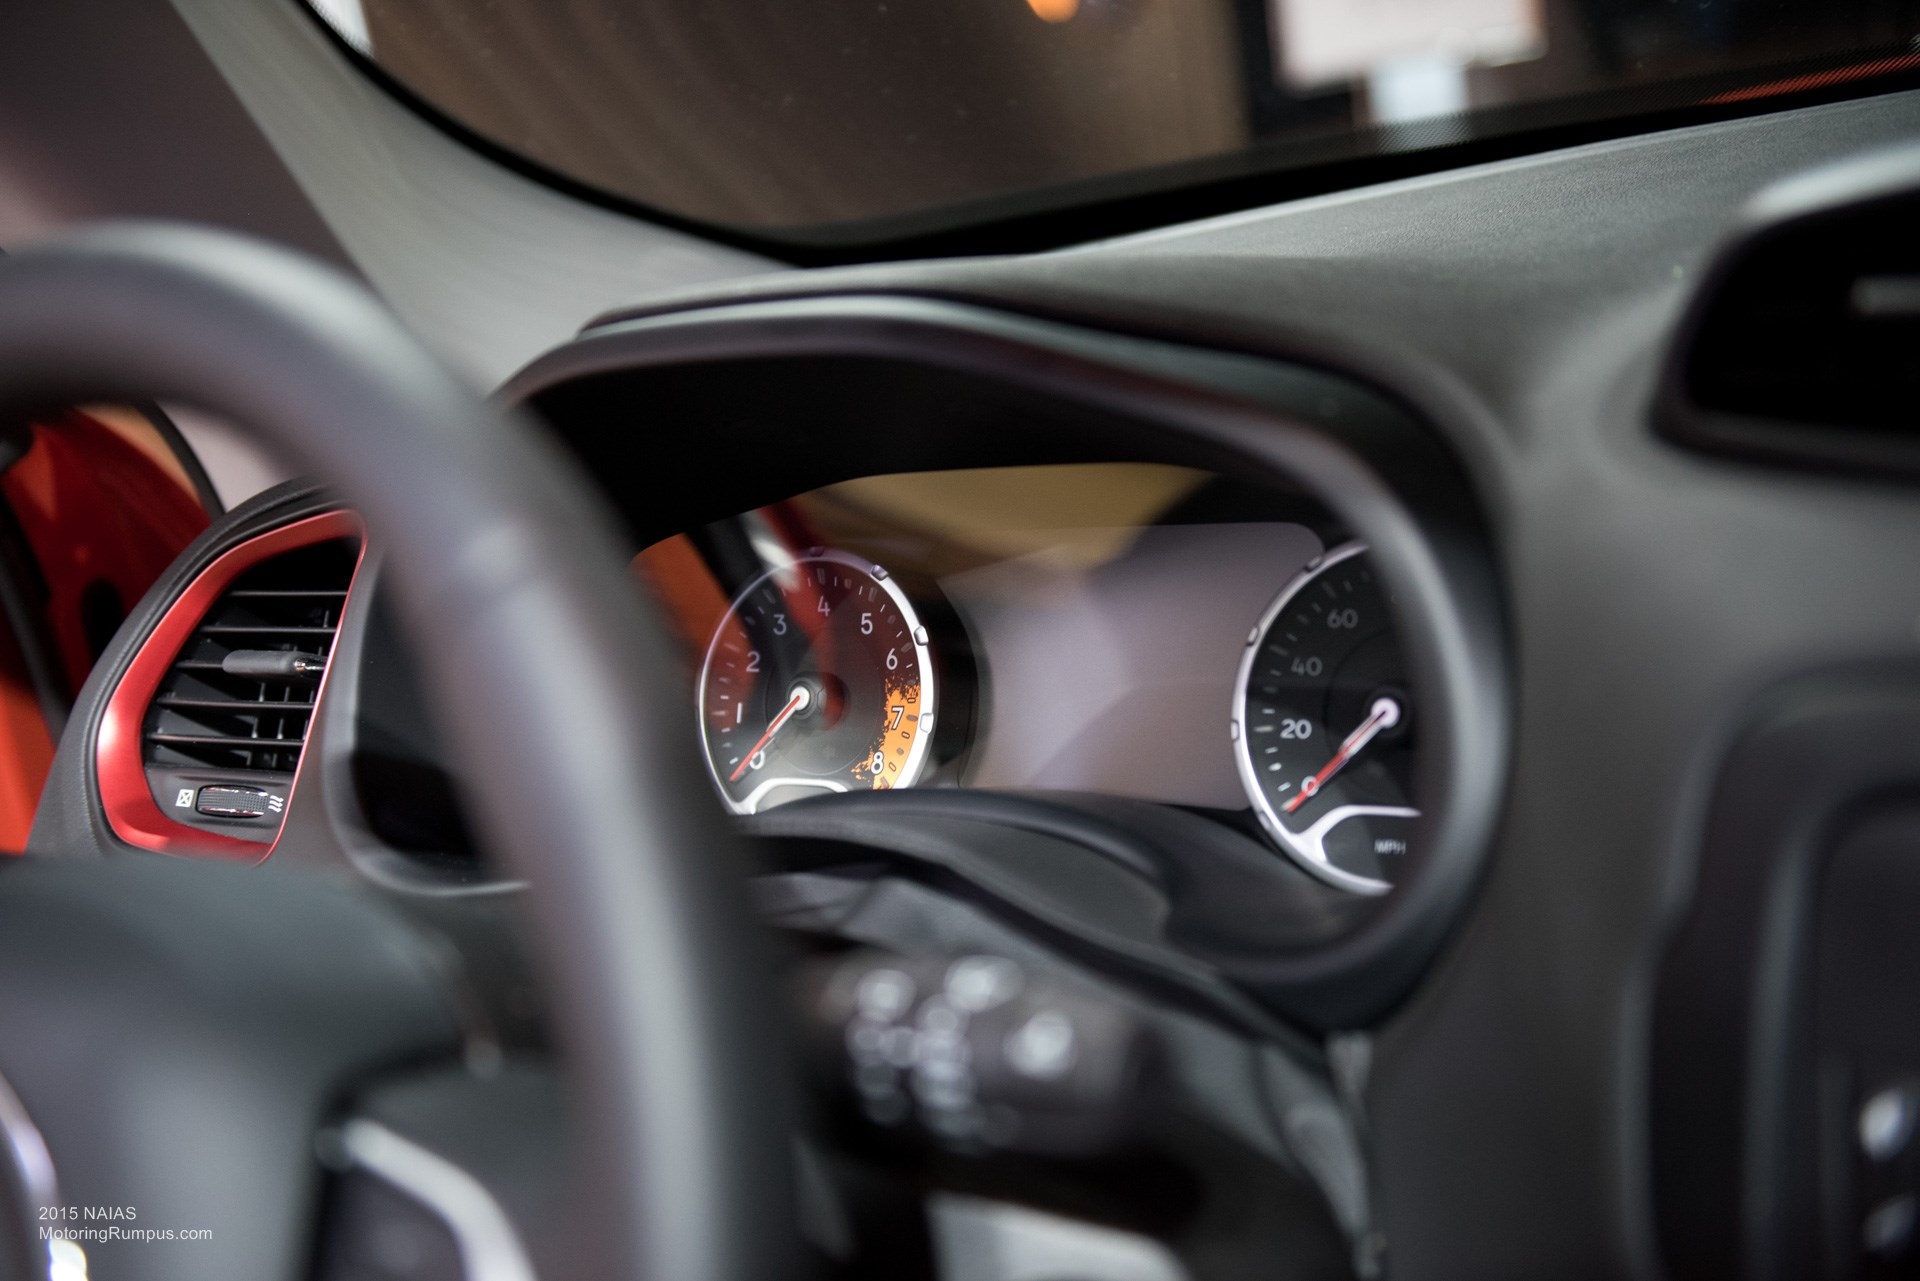 2015 NAIAS Jeep Renegade Trailhawk Instrument Cluster